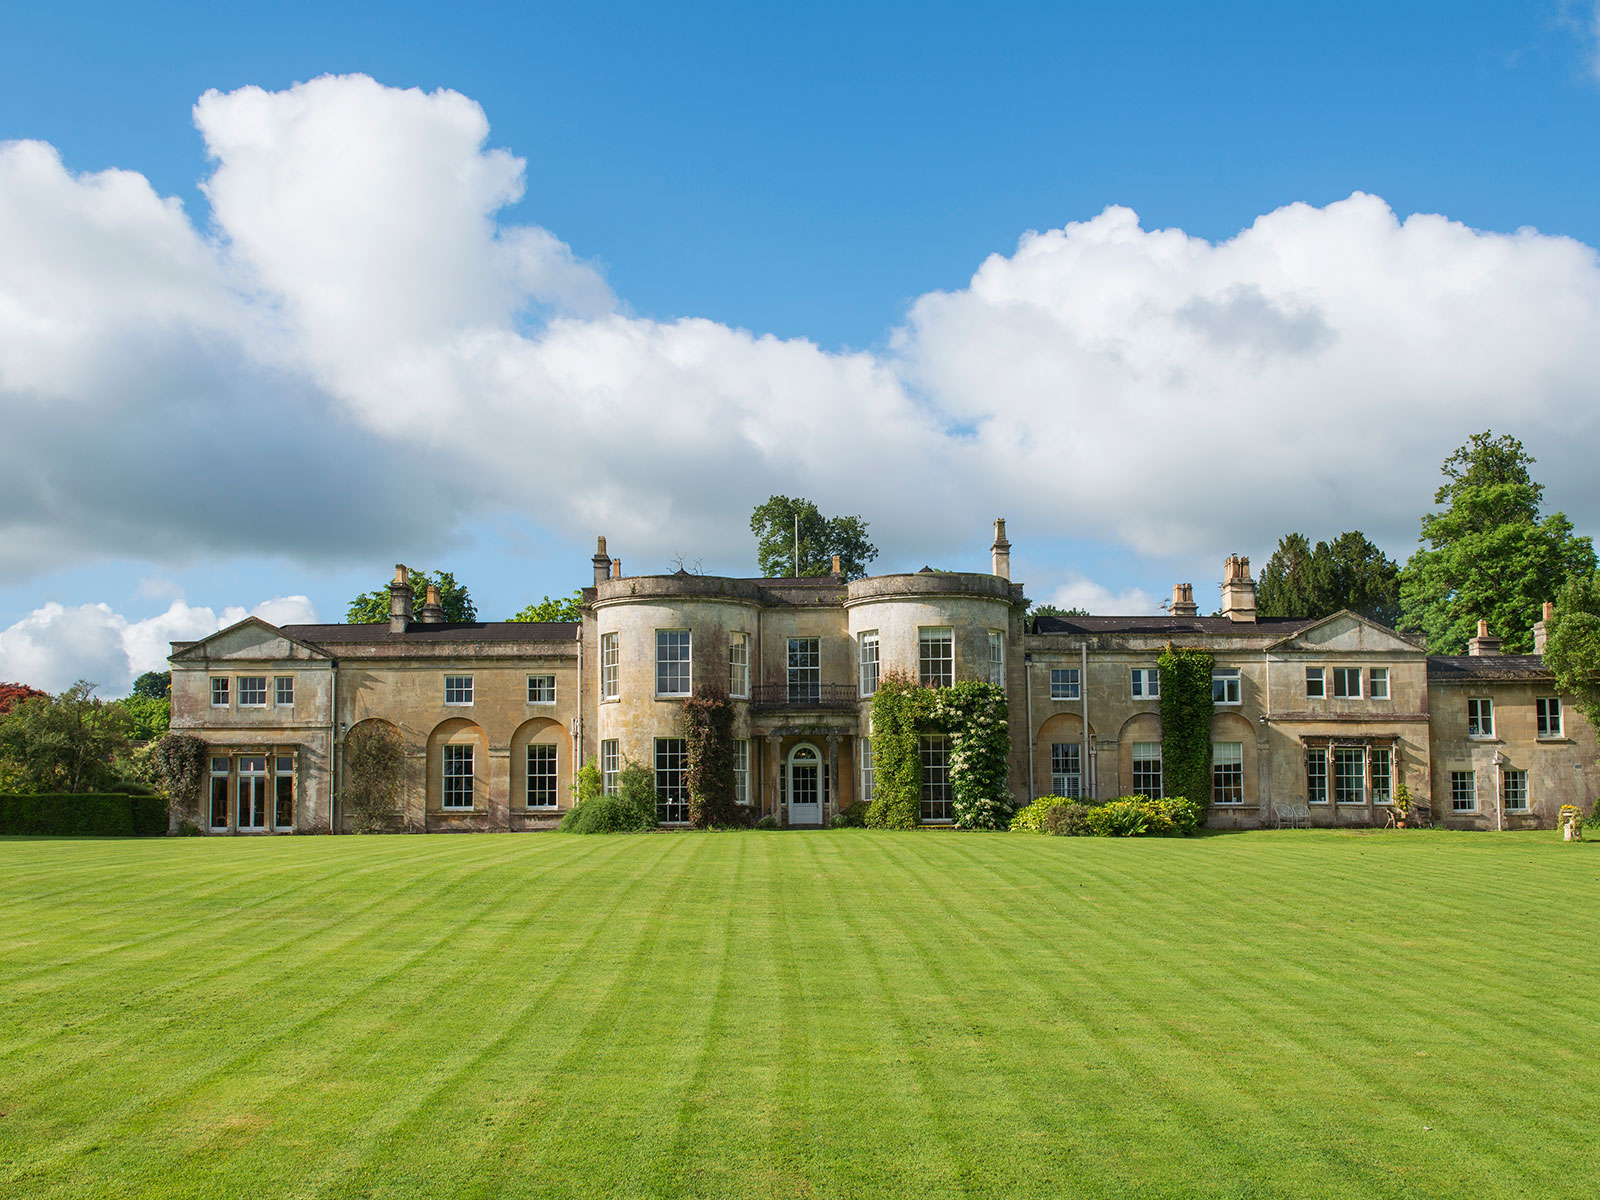 great british bake off mansion for sale